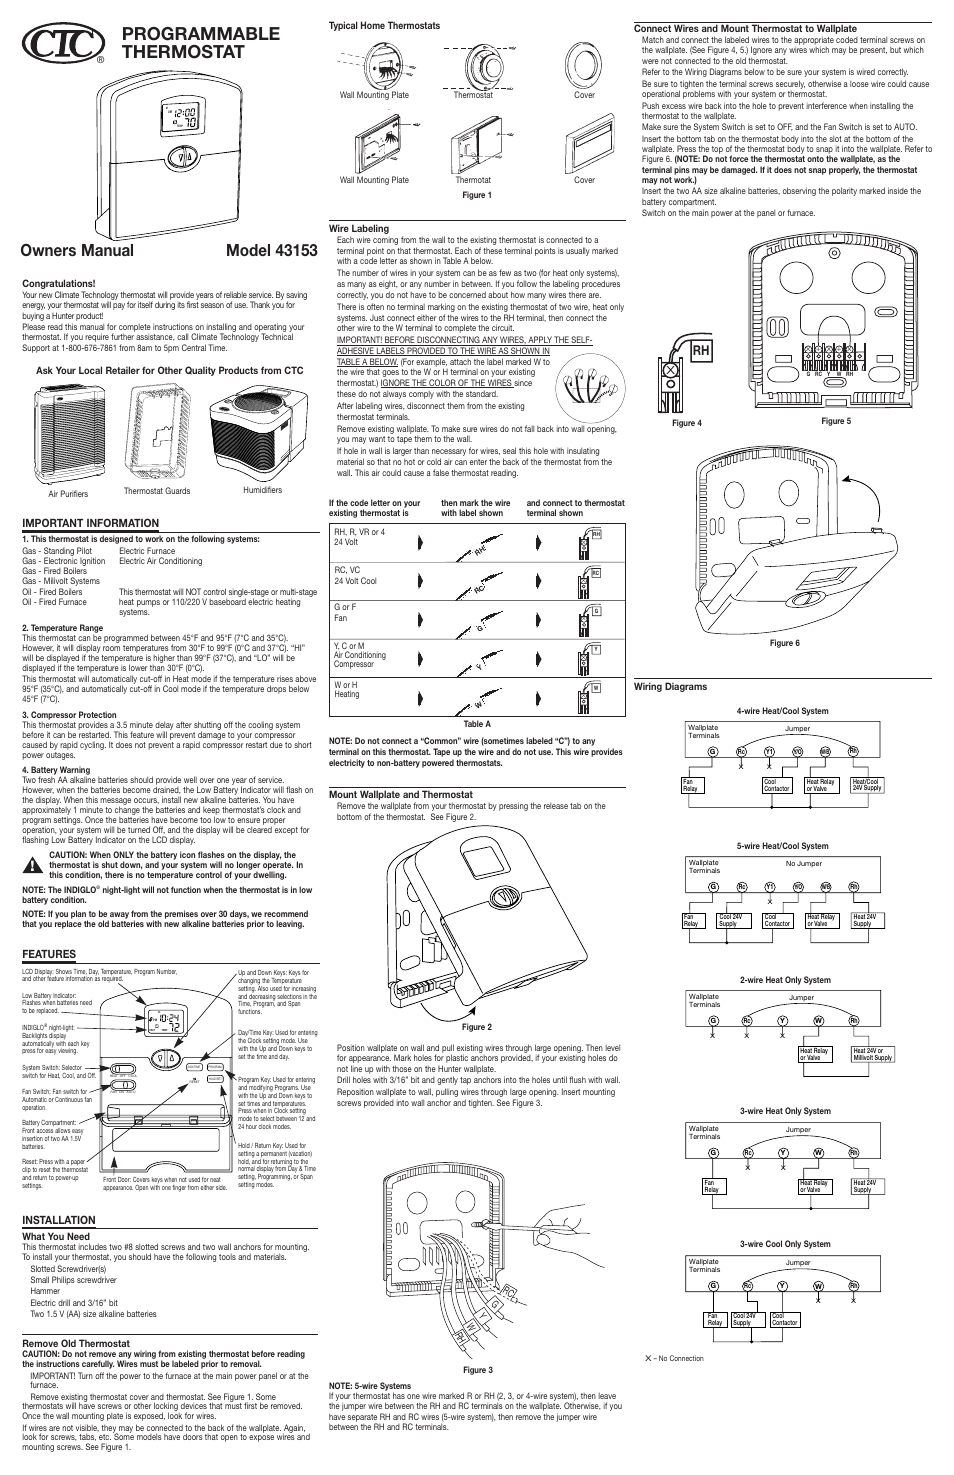 Wiring Diagram For Hunter Thermostat : Wire hunter thermostat wiring diagram engine